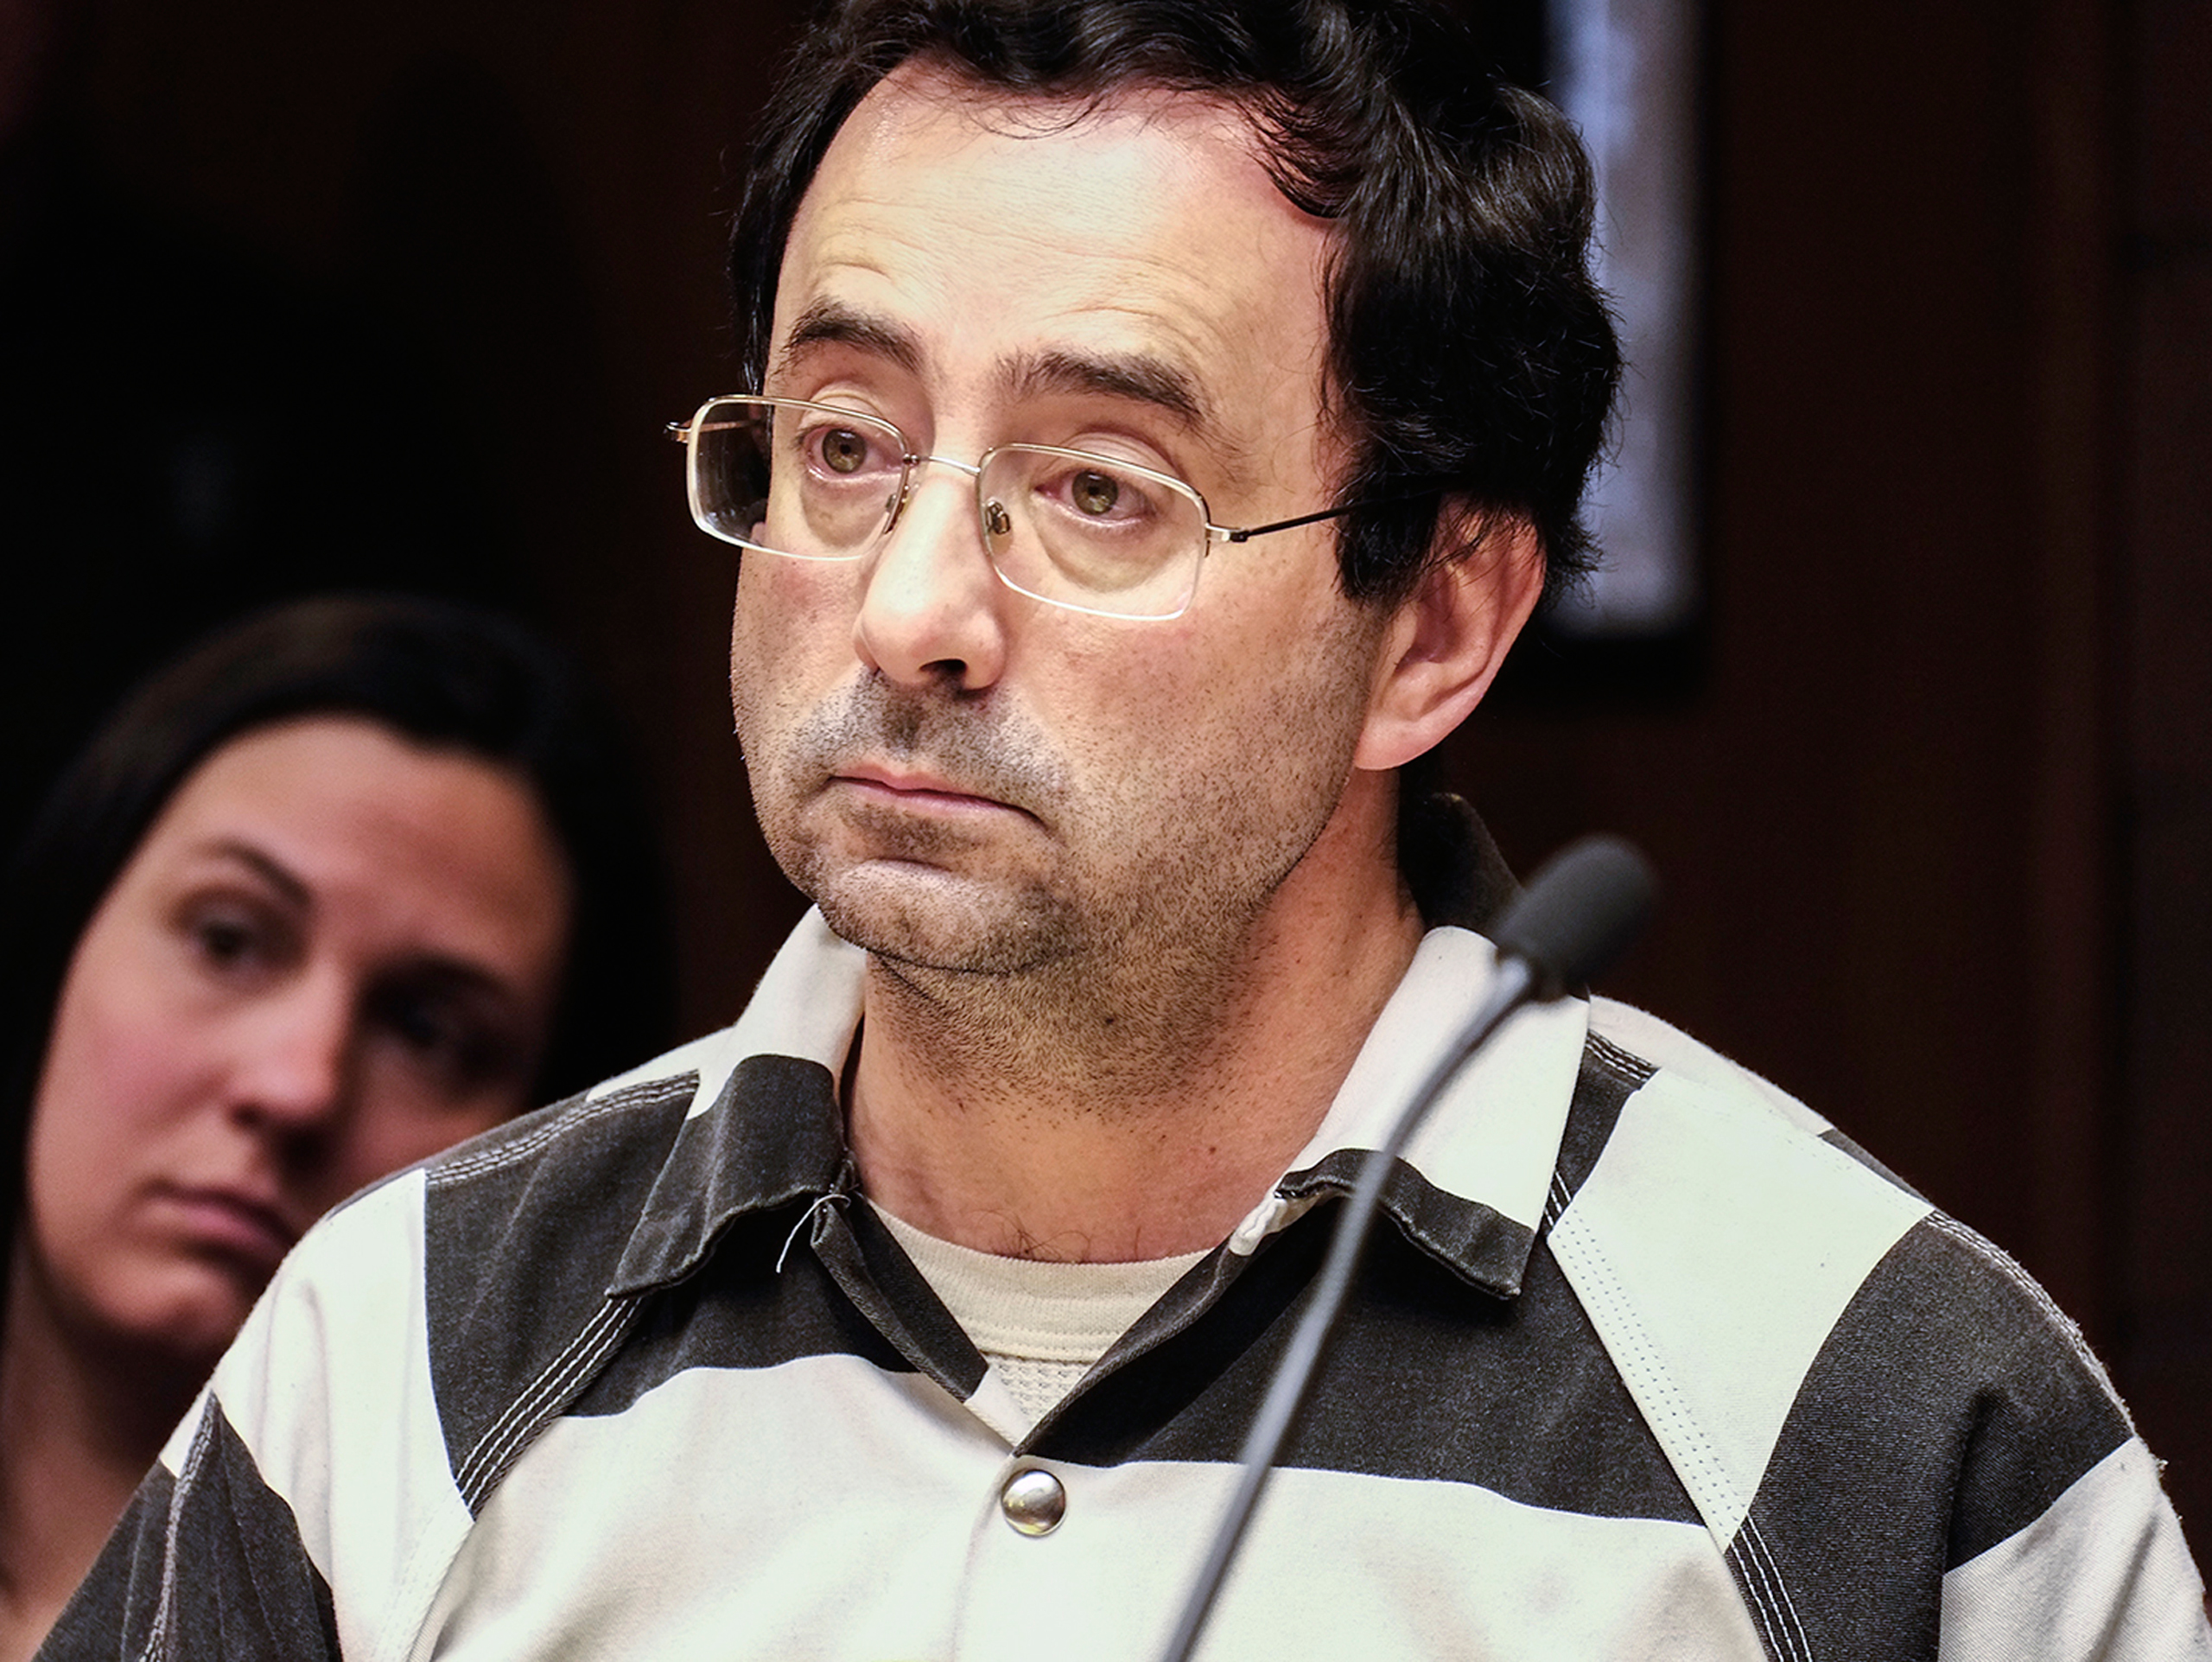 Dr. Larry Nassar listens to testimony of a witness during a preliminary hearing in Lansing, Mich., on Feb. 17, 2017